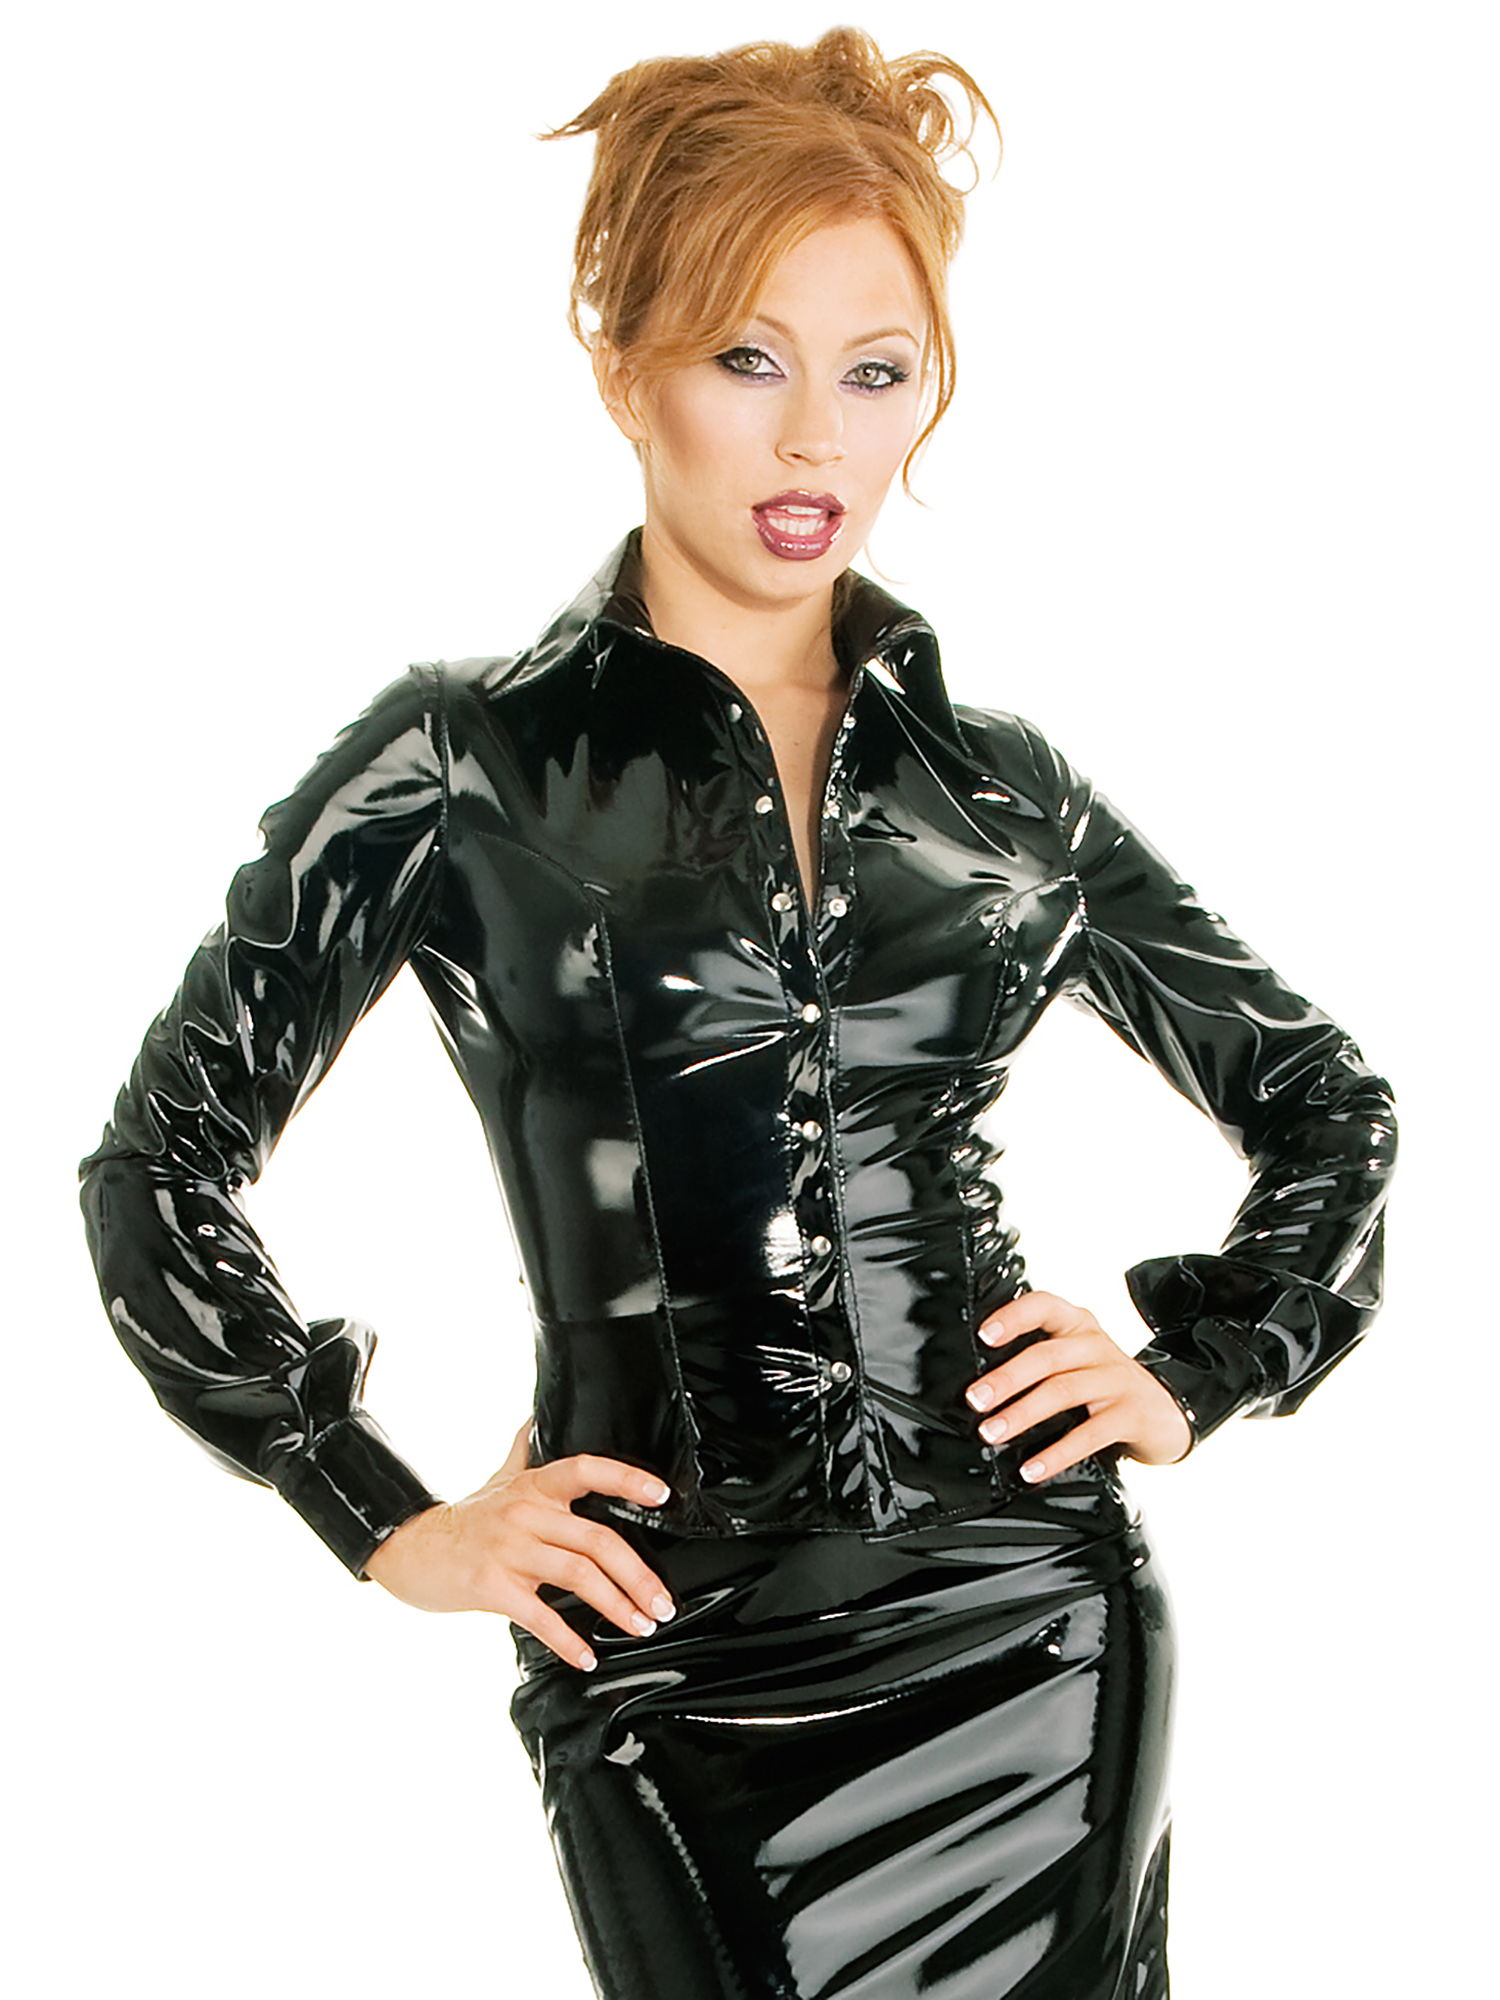 honour women 39 s sexy shirt blouse in pvc black with shaped hem classic trimming ebay. Black Bedroom Furniture Sets. Home Design Ideas